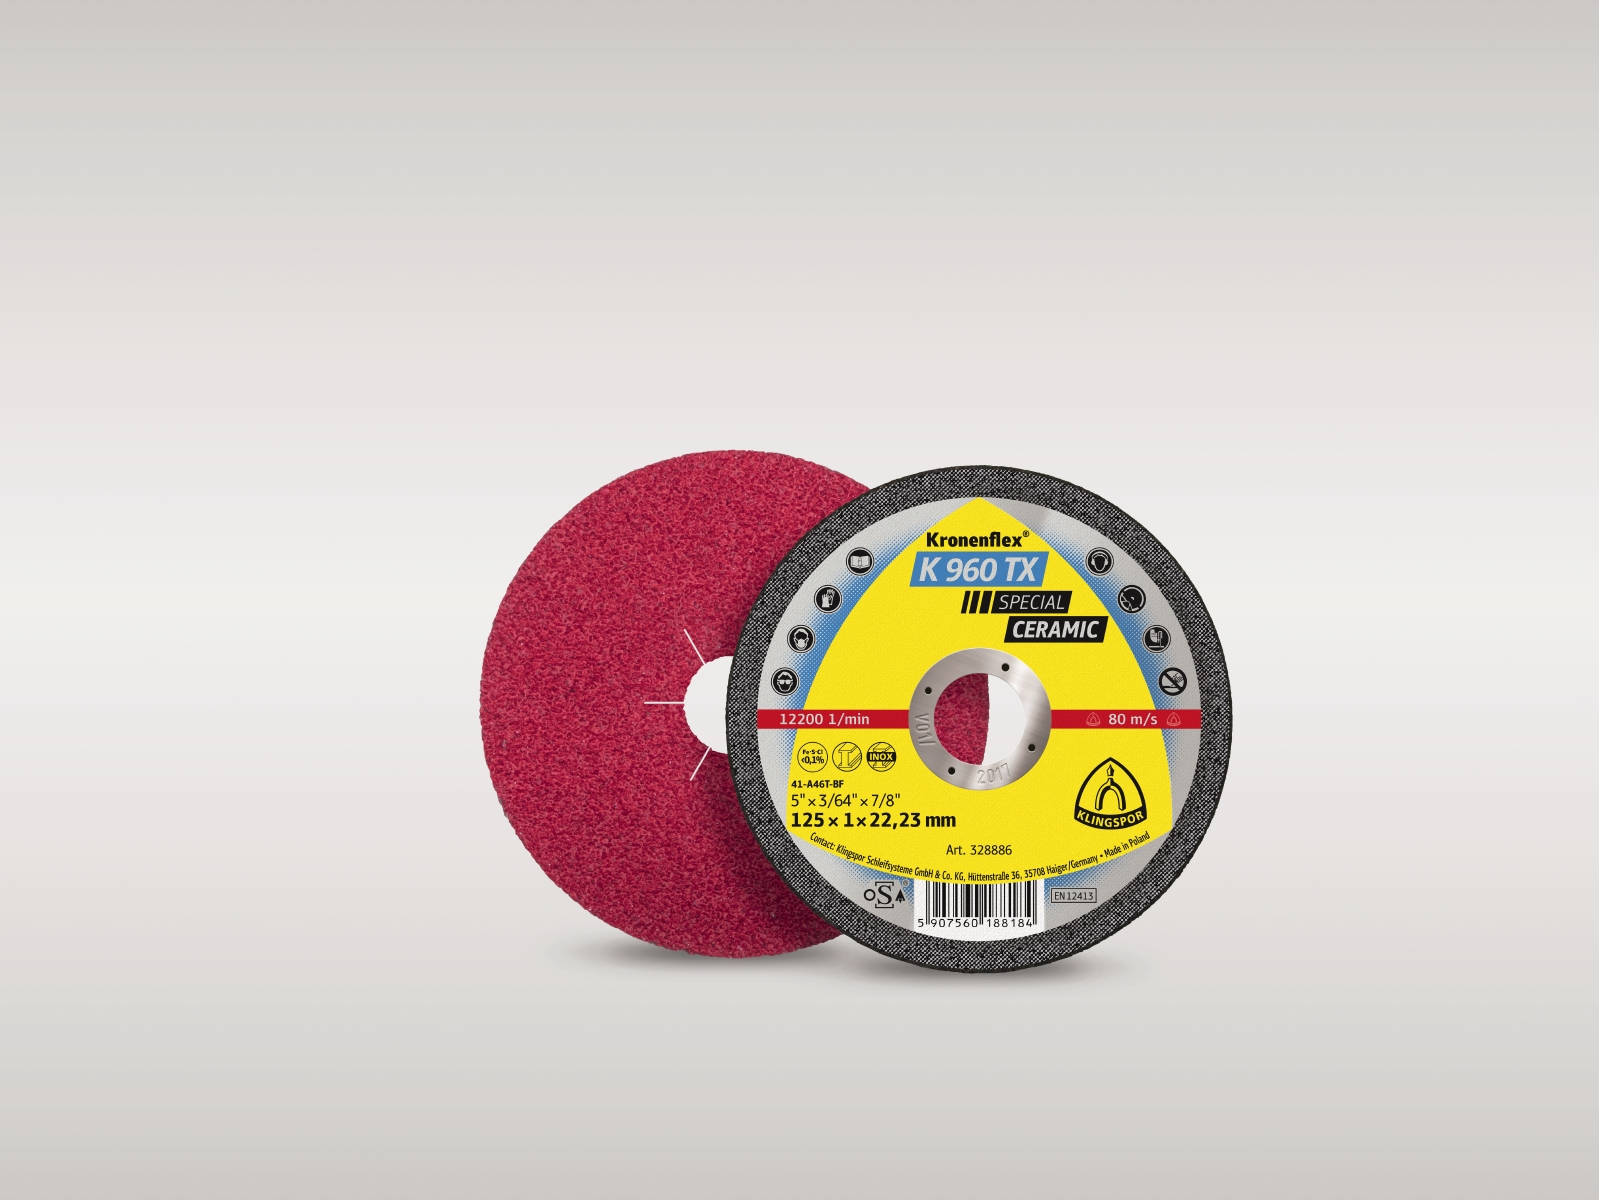 Grinding & cutting discs - Offering the full Klingspor and ATA range of cutting, grinding and sanding discs.